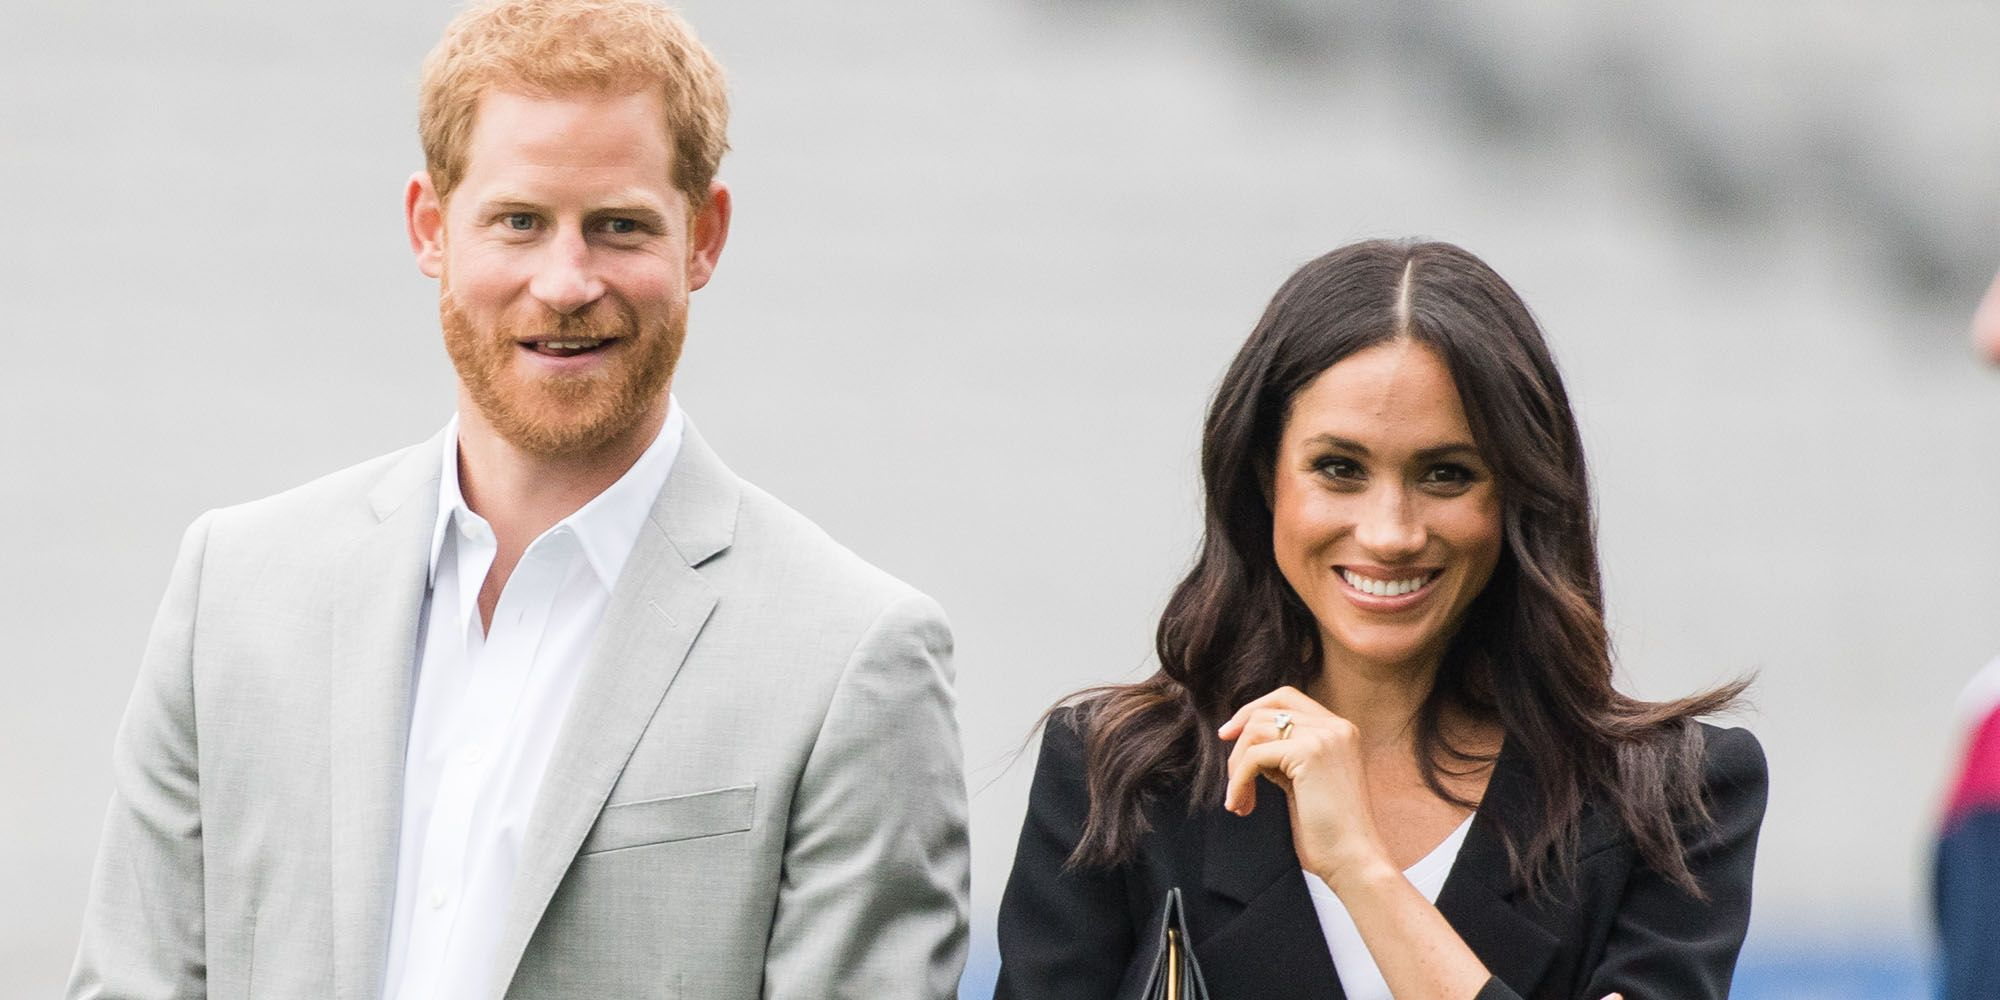 Meghan Markle en Prins Harry op tour in Dublin